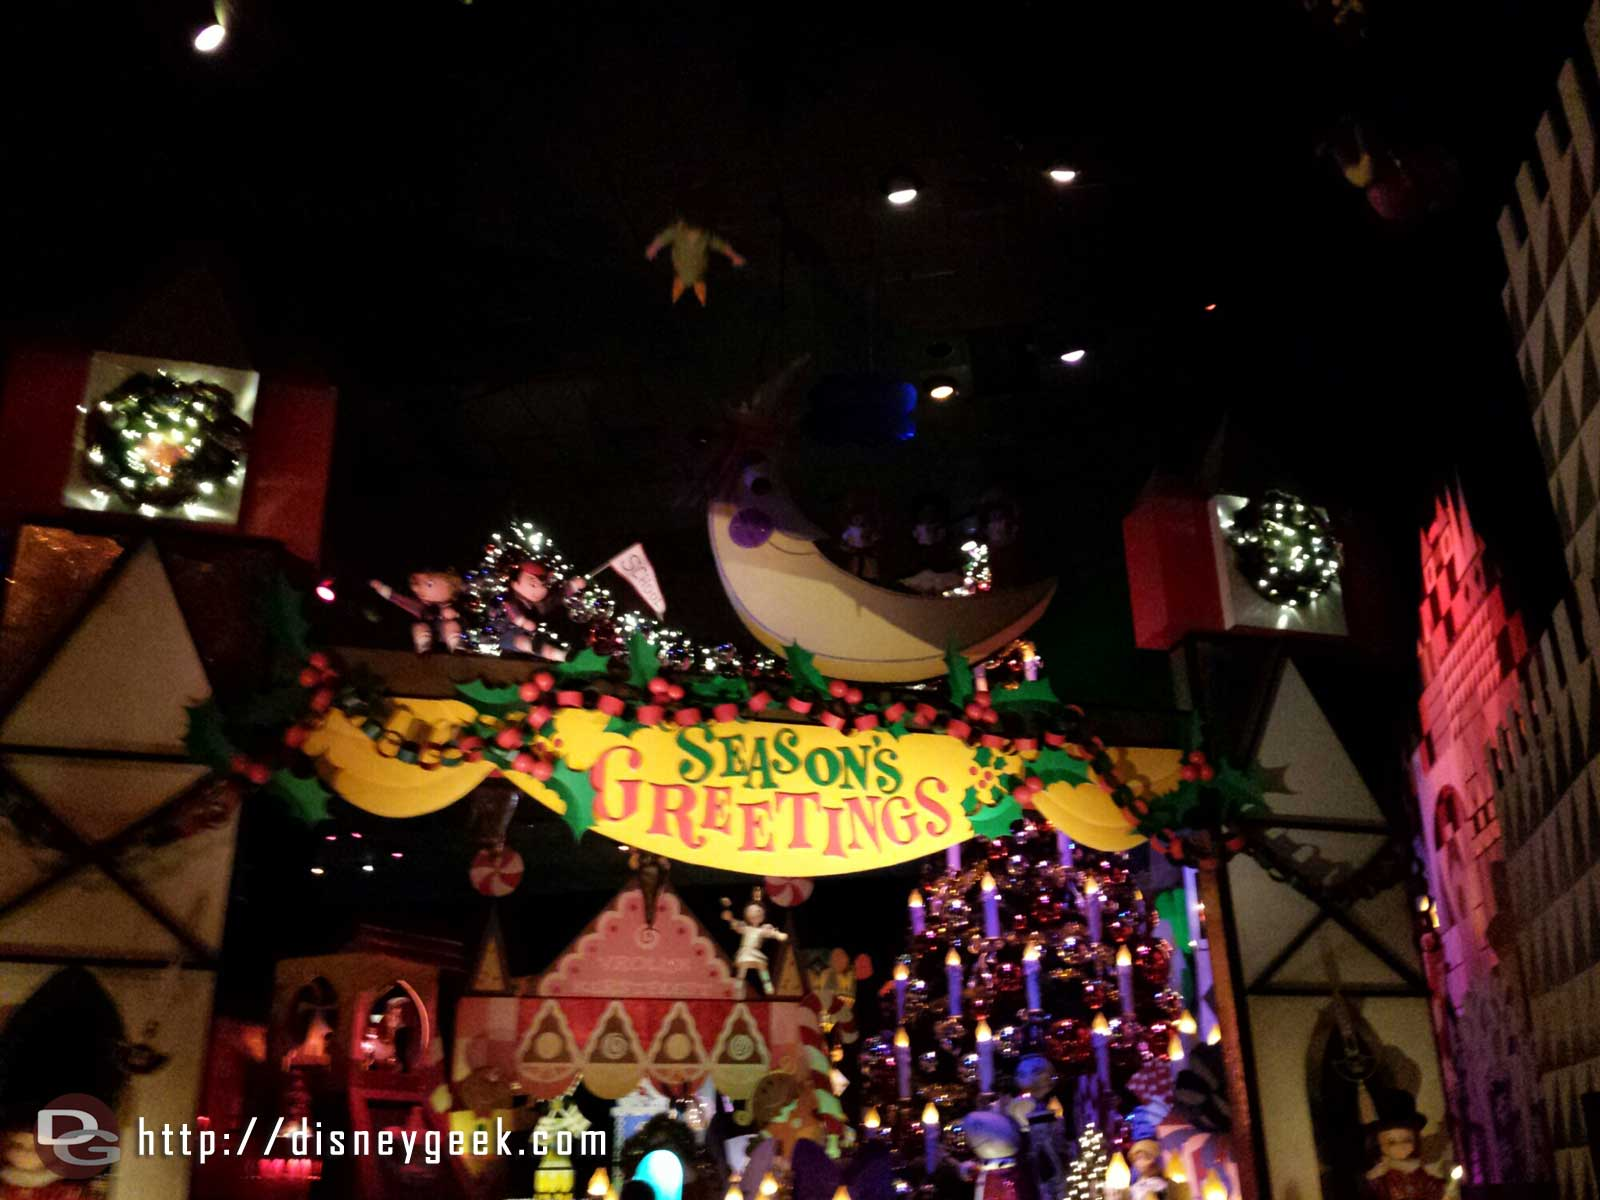 Season's Greetings from Small World Holiday #Disneyland